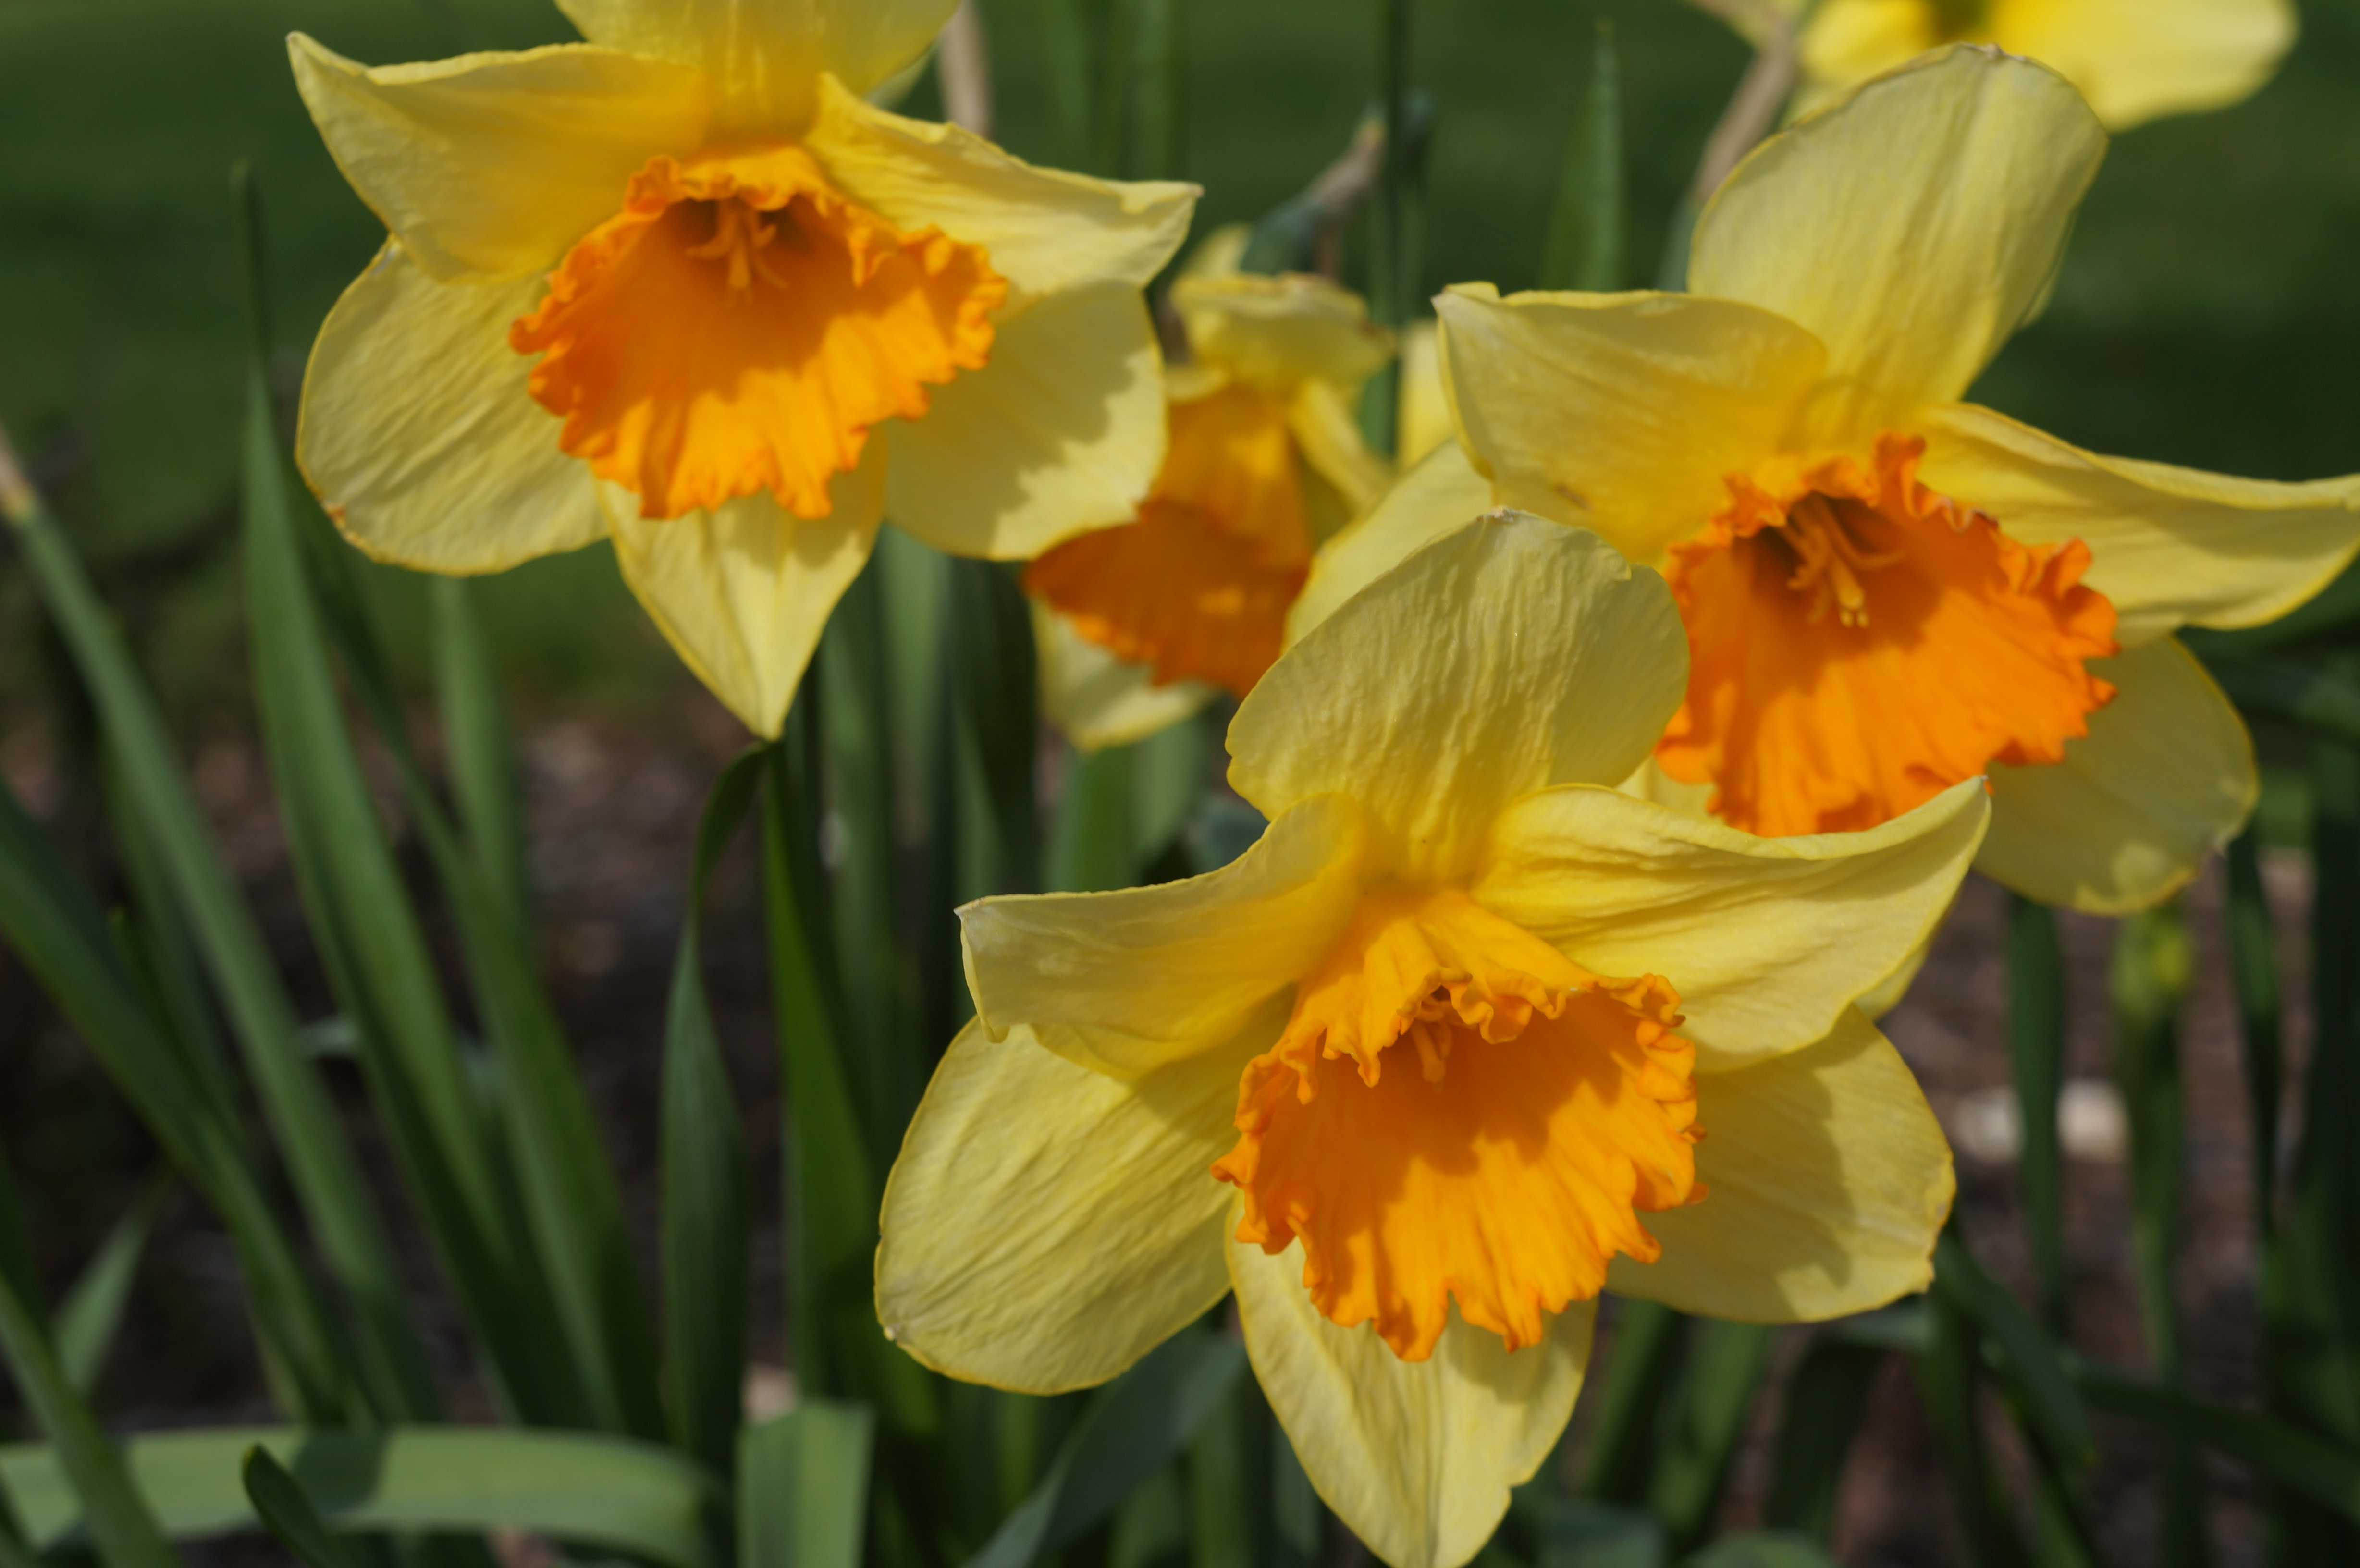 Flowers bulb flowers yellow orange daffodil